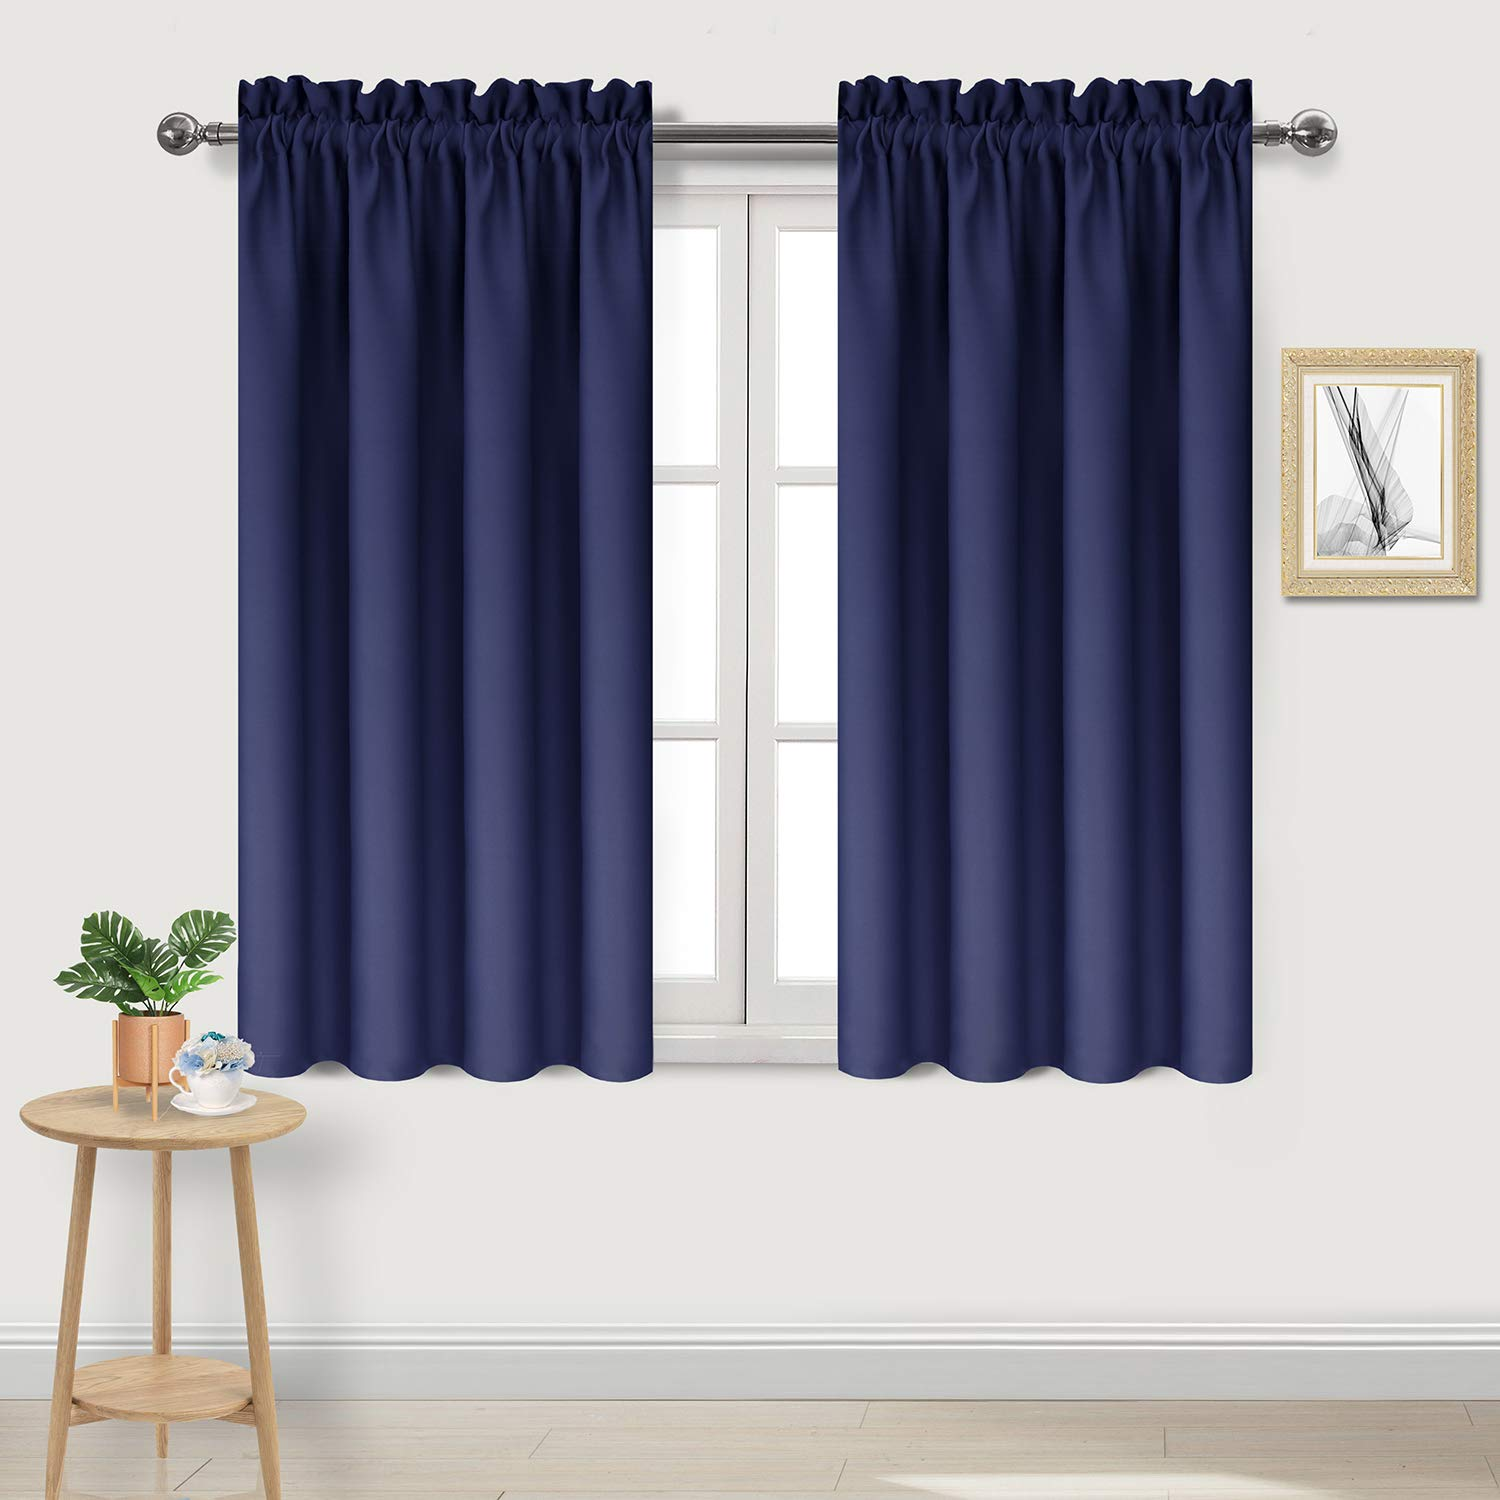 DWCN Blackout Curtains Room Darkening Thermal Insulated Living Room Curtains Rod Pocket Kitchen Curtains Short Curtain Panels, Navy Blue, 42 x 45 inch Length, Set of 2